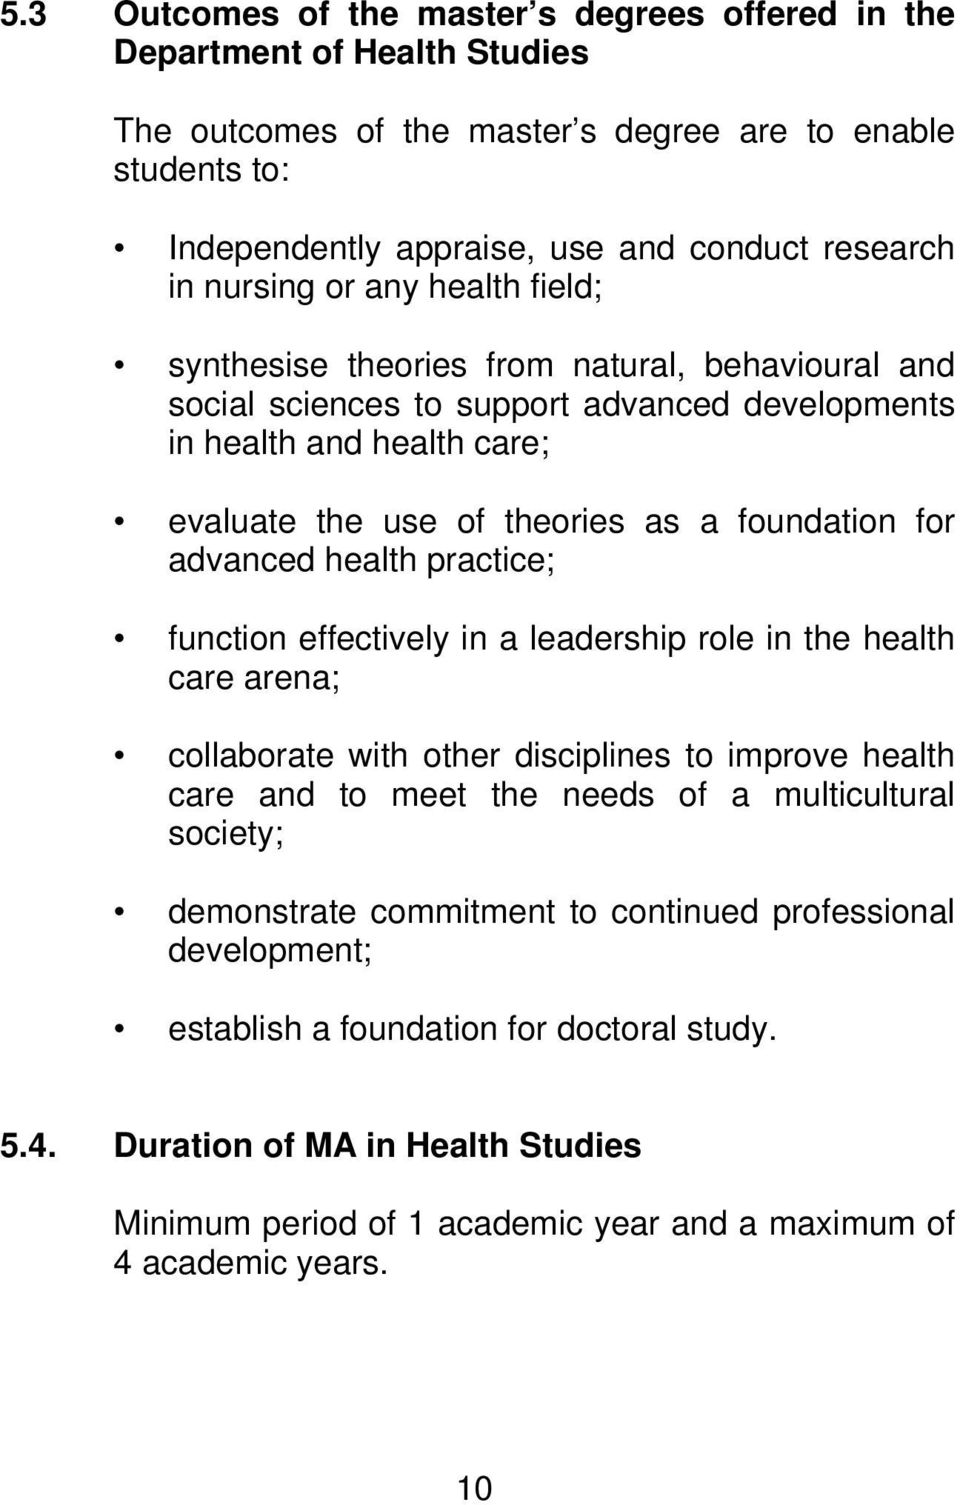 for advanced health practice; function effectively in a leadership role in the health care arena; collaborate with other disciplines to improve health care and to meet the needs of a multicultural